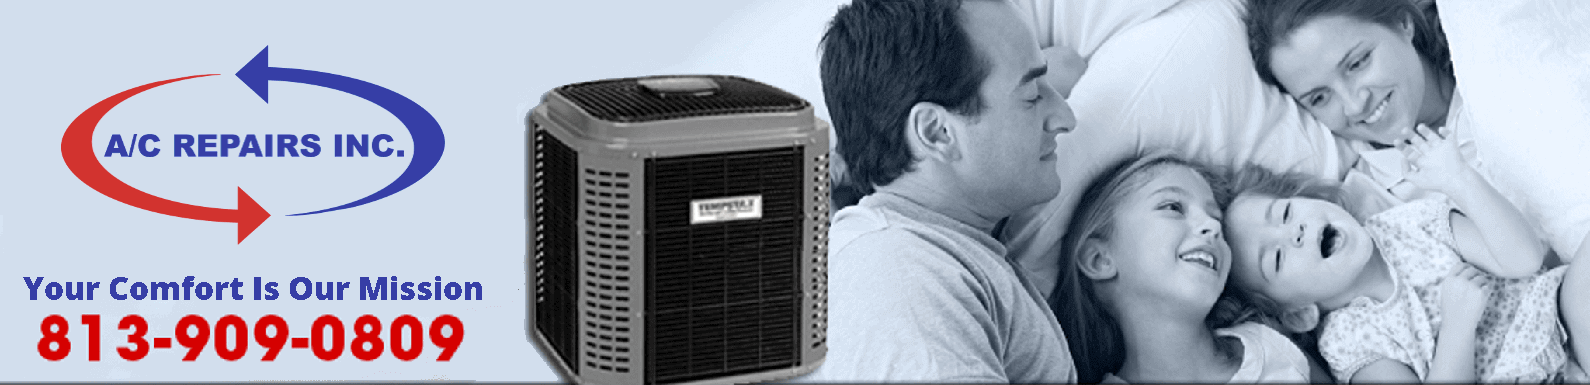 Tempstar QuietComfort Series Air Conditioners